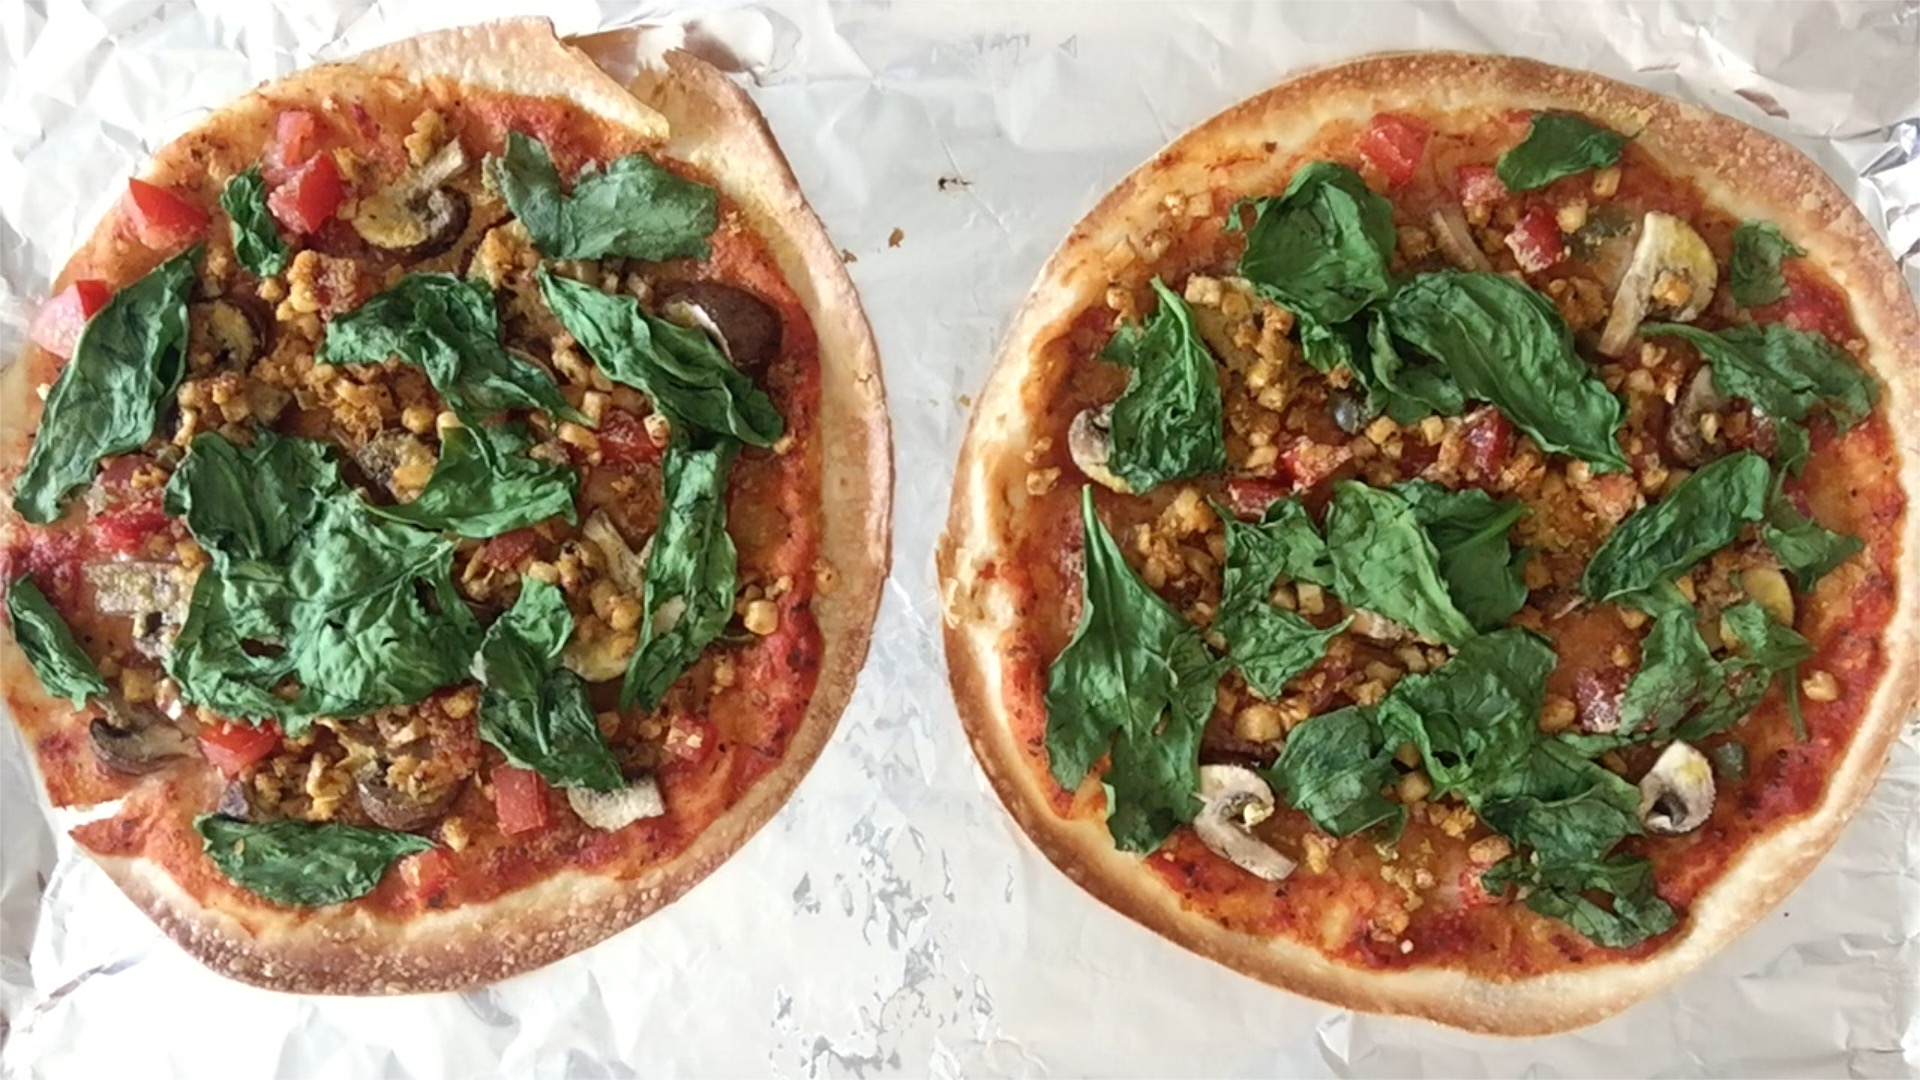 HOmemade, vegan pizza – www.gracewithhumility.com